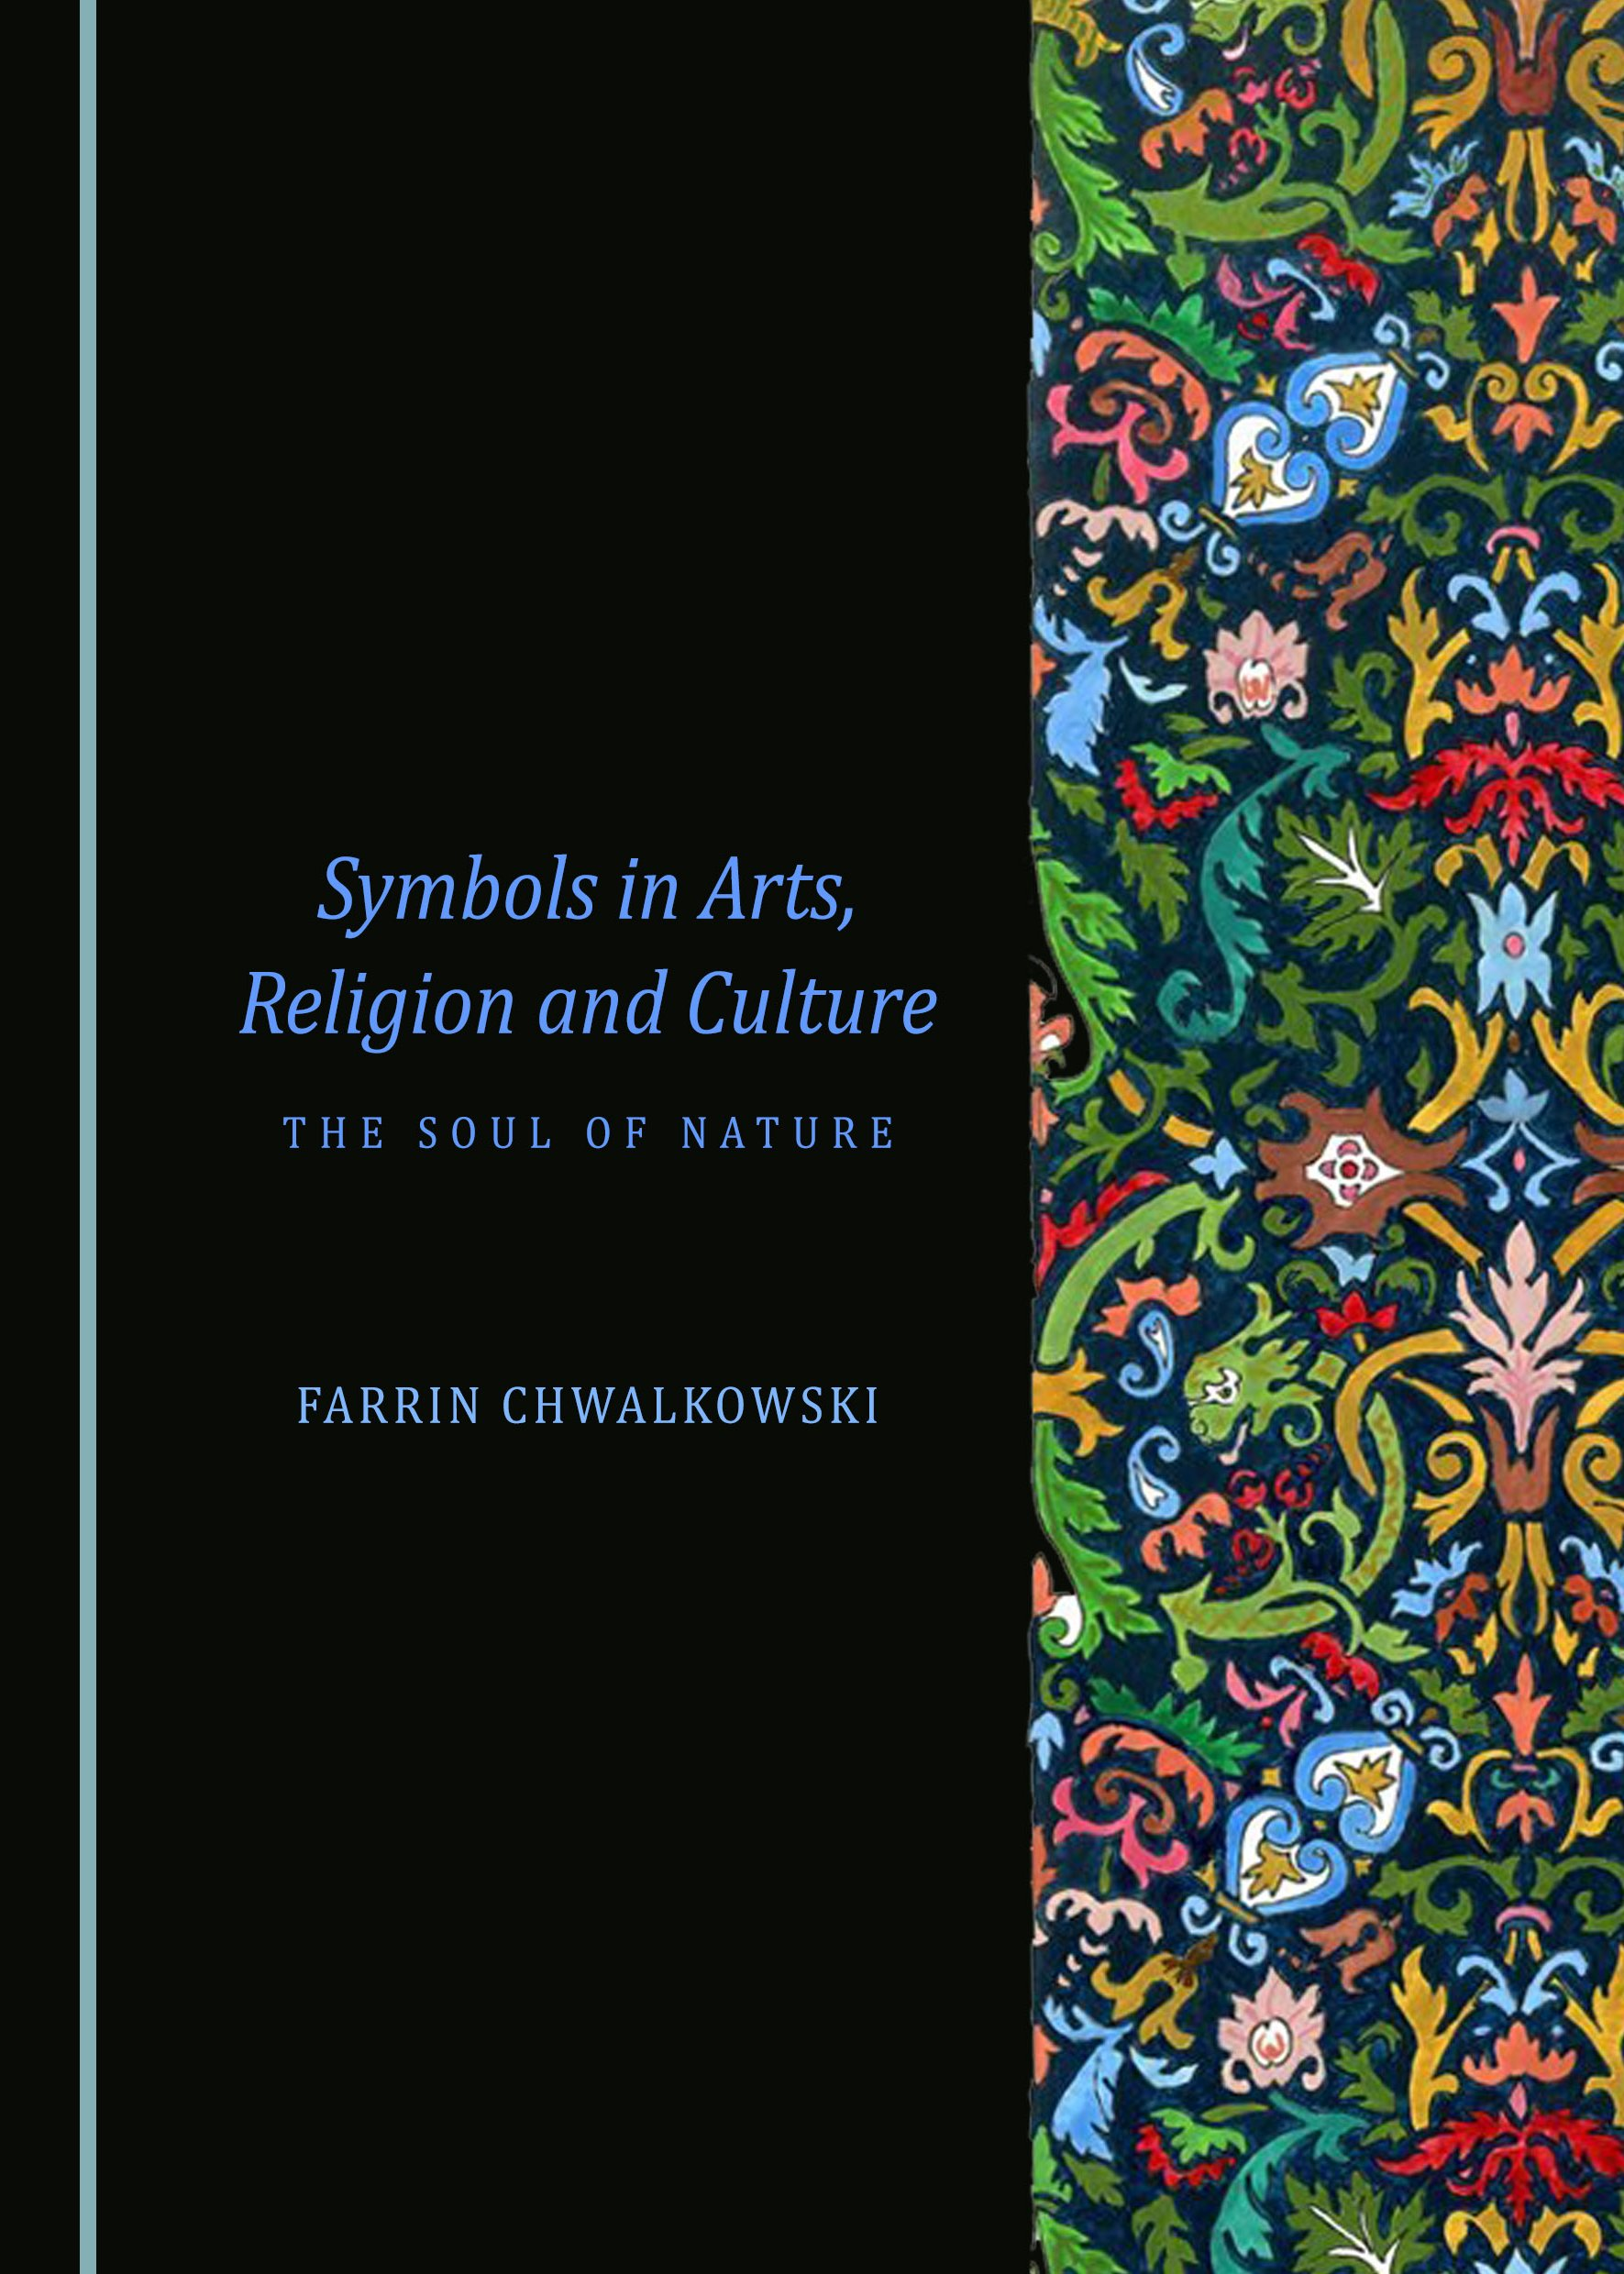 Symbols in Arts, Religion and Culture: The Soul of Nature